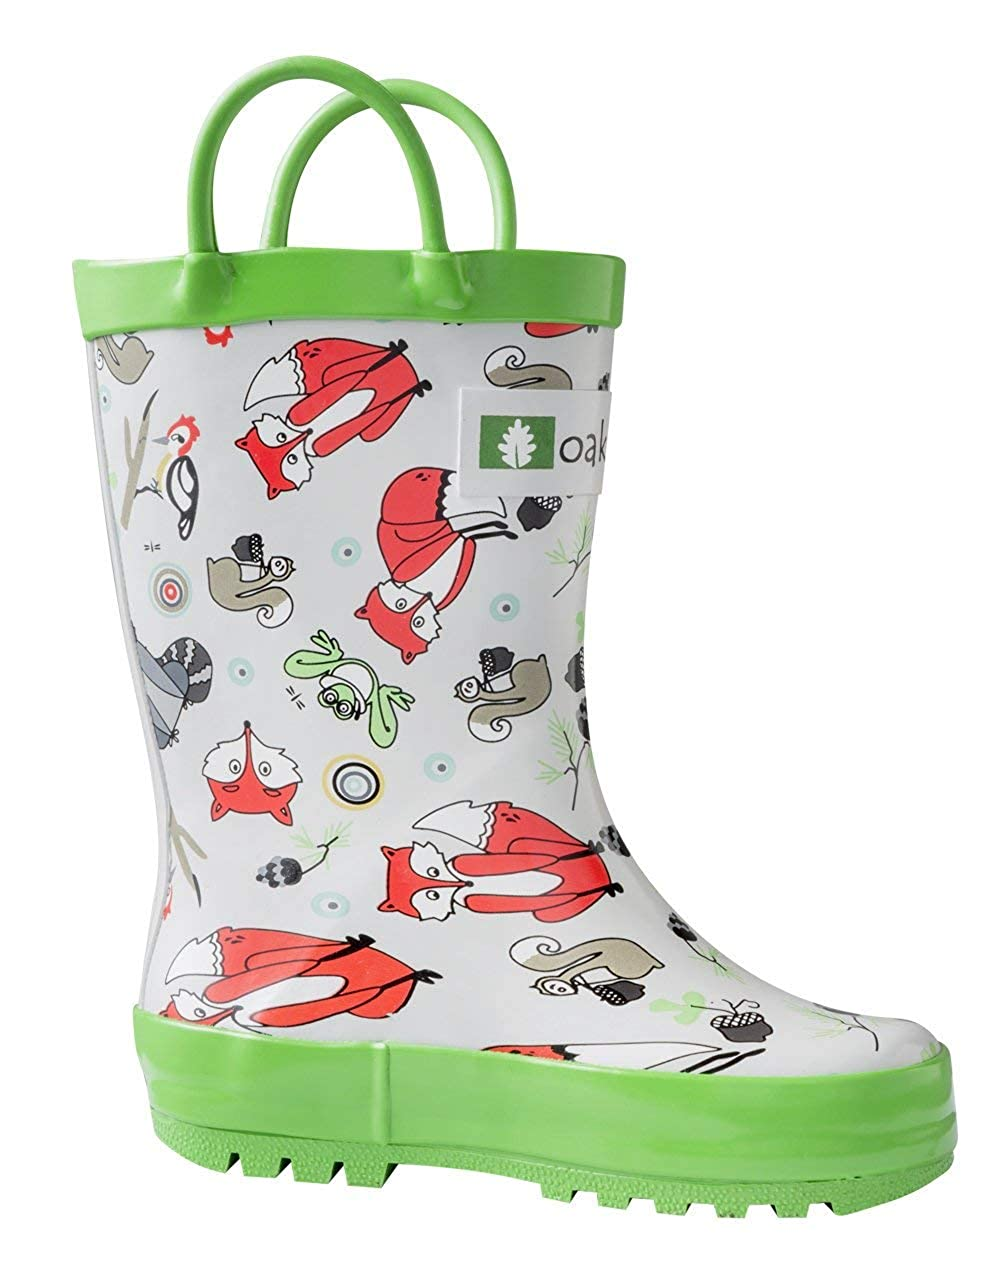 Butterflies 10T US Toddler OAKI Kids Rubber Rain Boots with Easy-On Handles